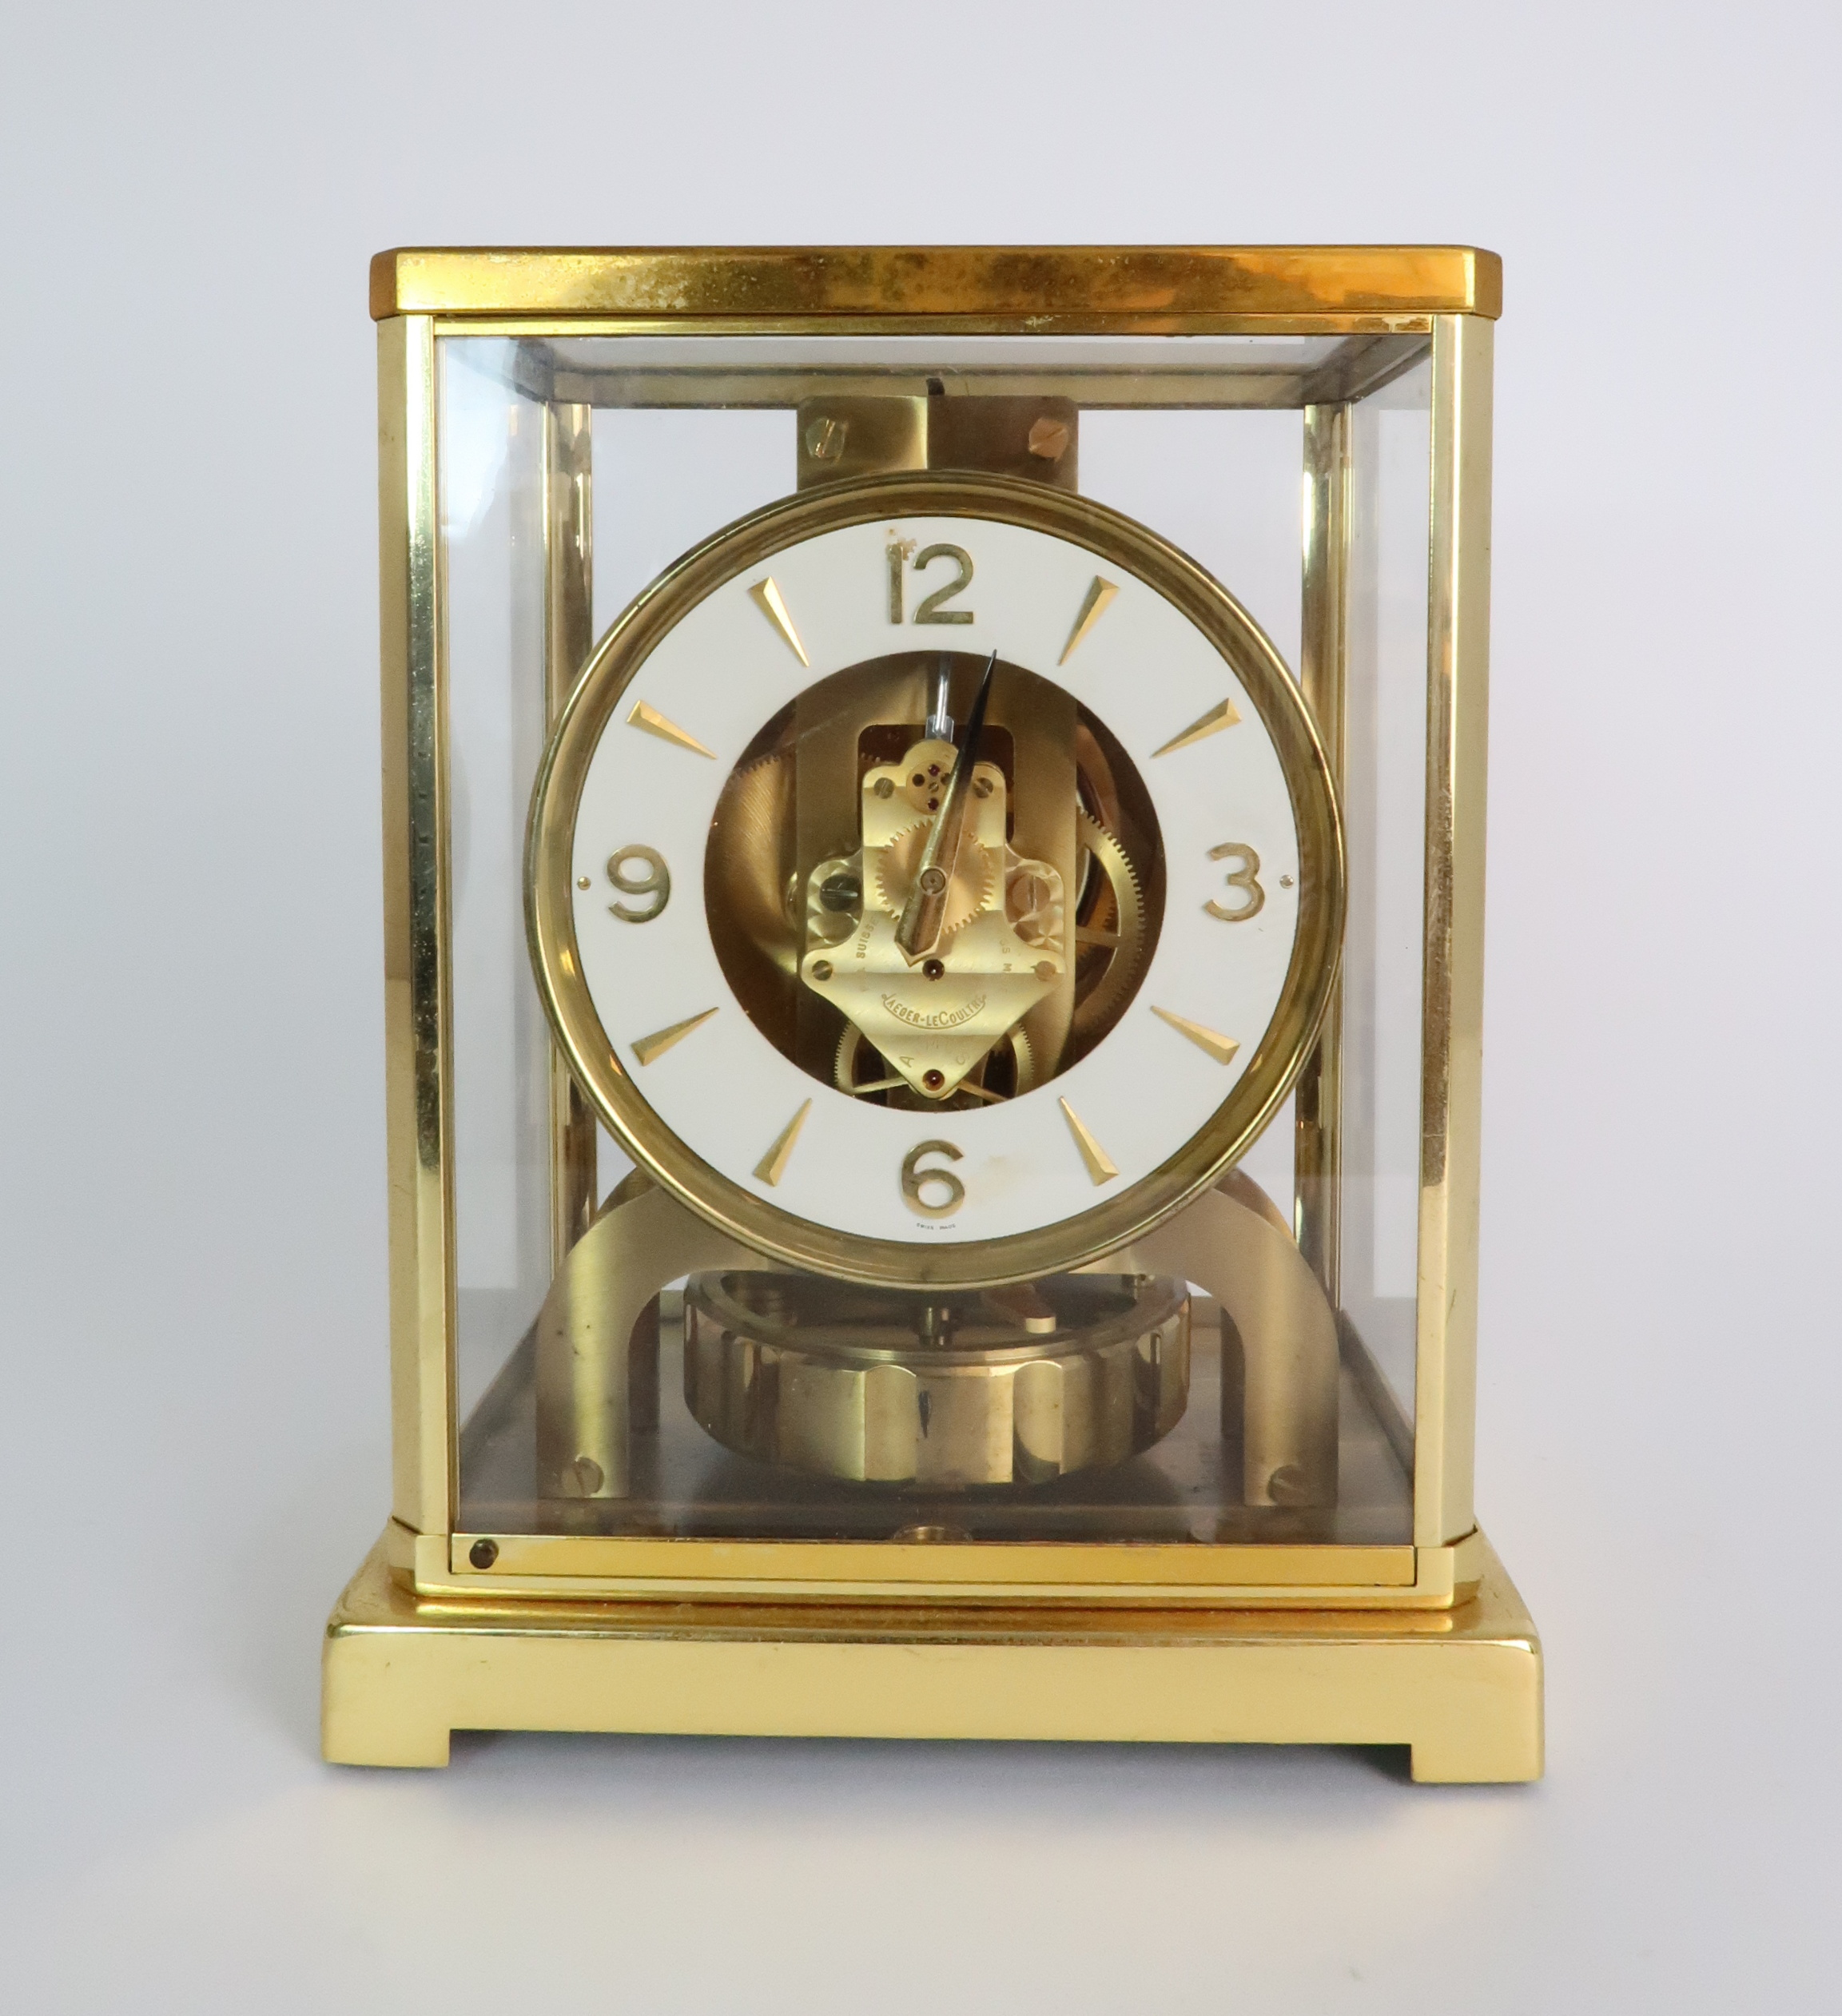 A JAEGER LE COULTRE ATMOS CLOCK in glazed brass case, the white enamel chapter ring with applied